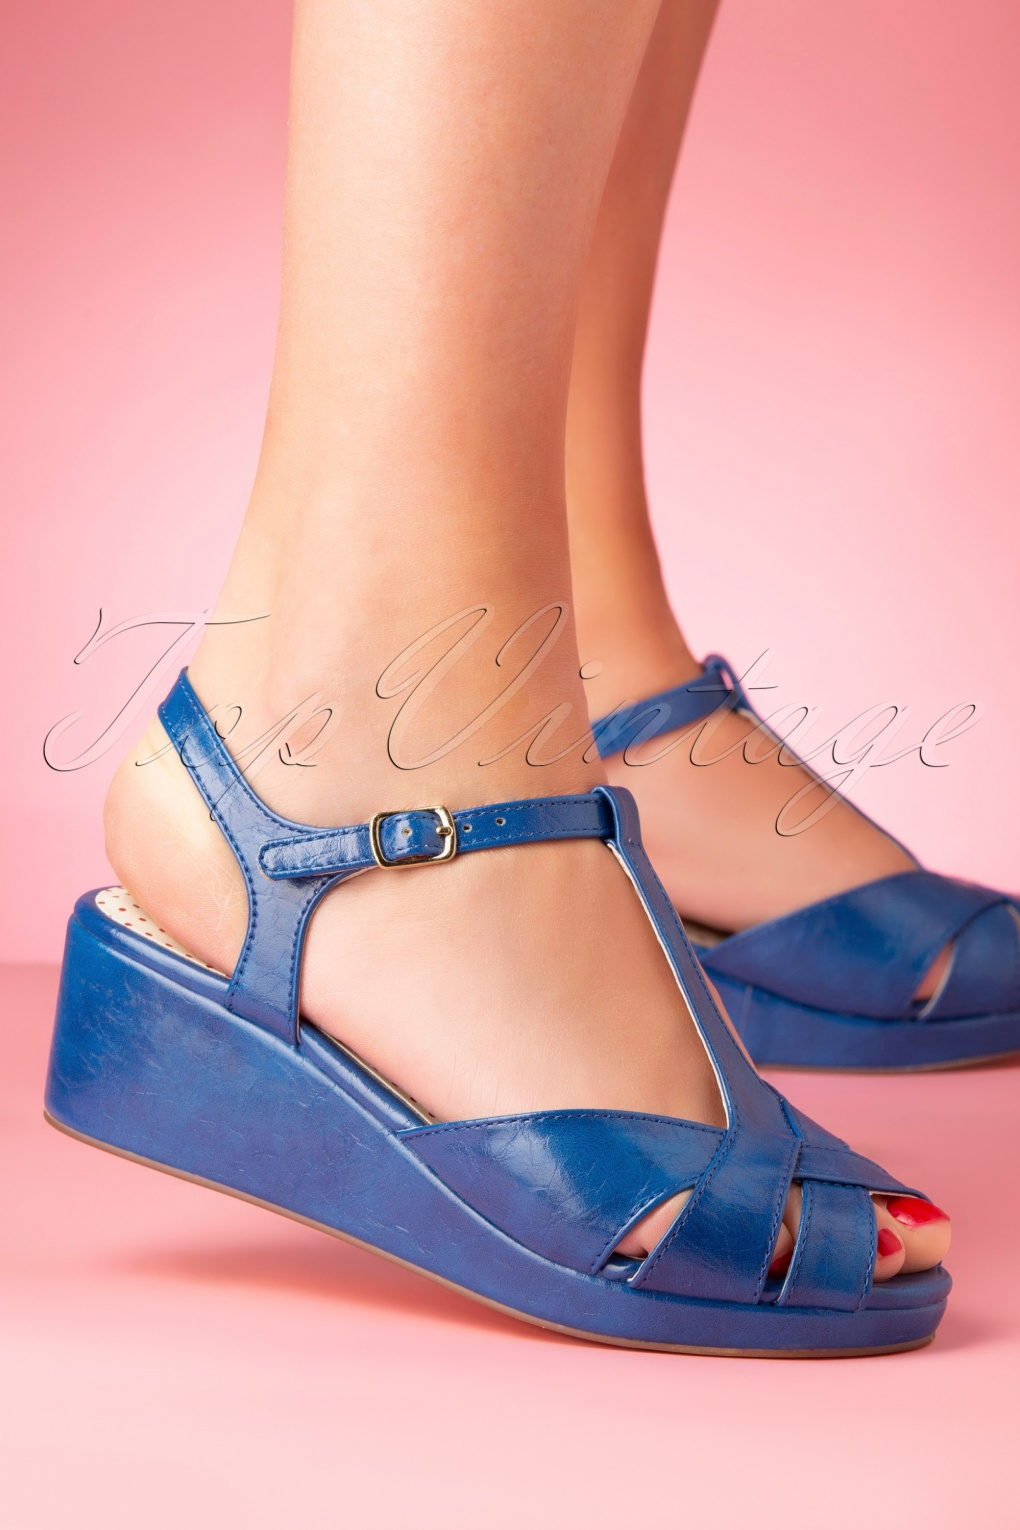 Pin Up Shoes- Heels, Pumps & Flats 50s Kira Low Wedge Sandals in Blue £67.93 AT vintagedancer.com